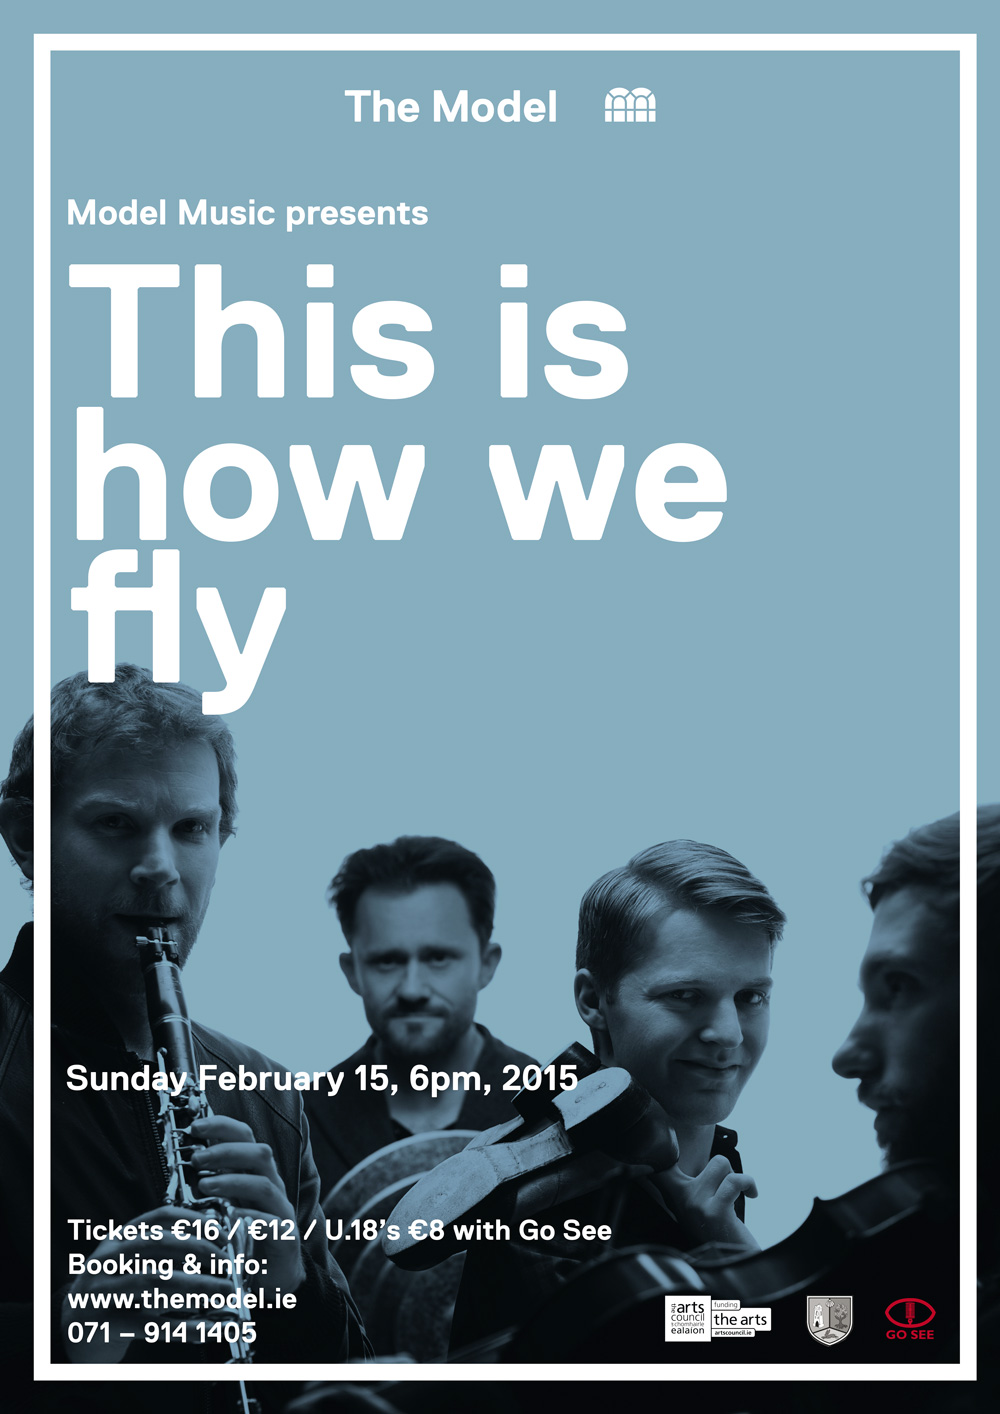 TheModel_Thisishowwefly_A3posters.jpg